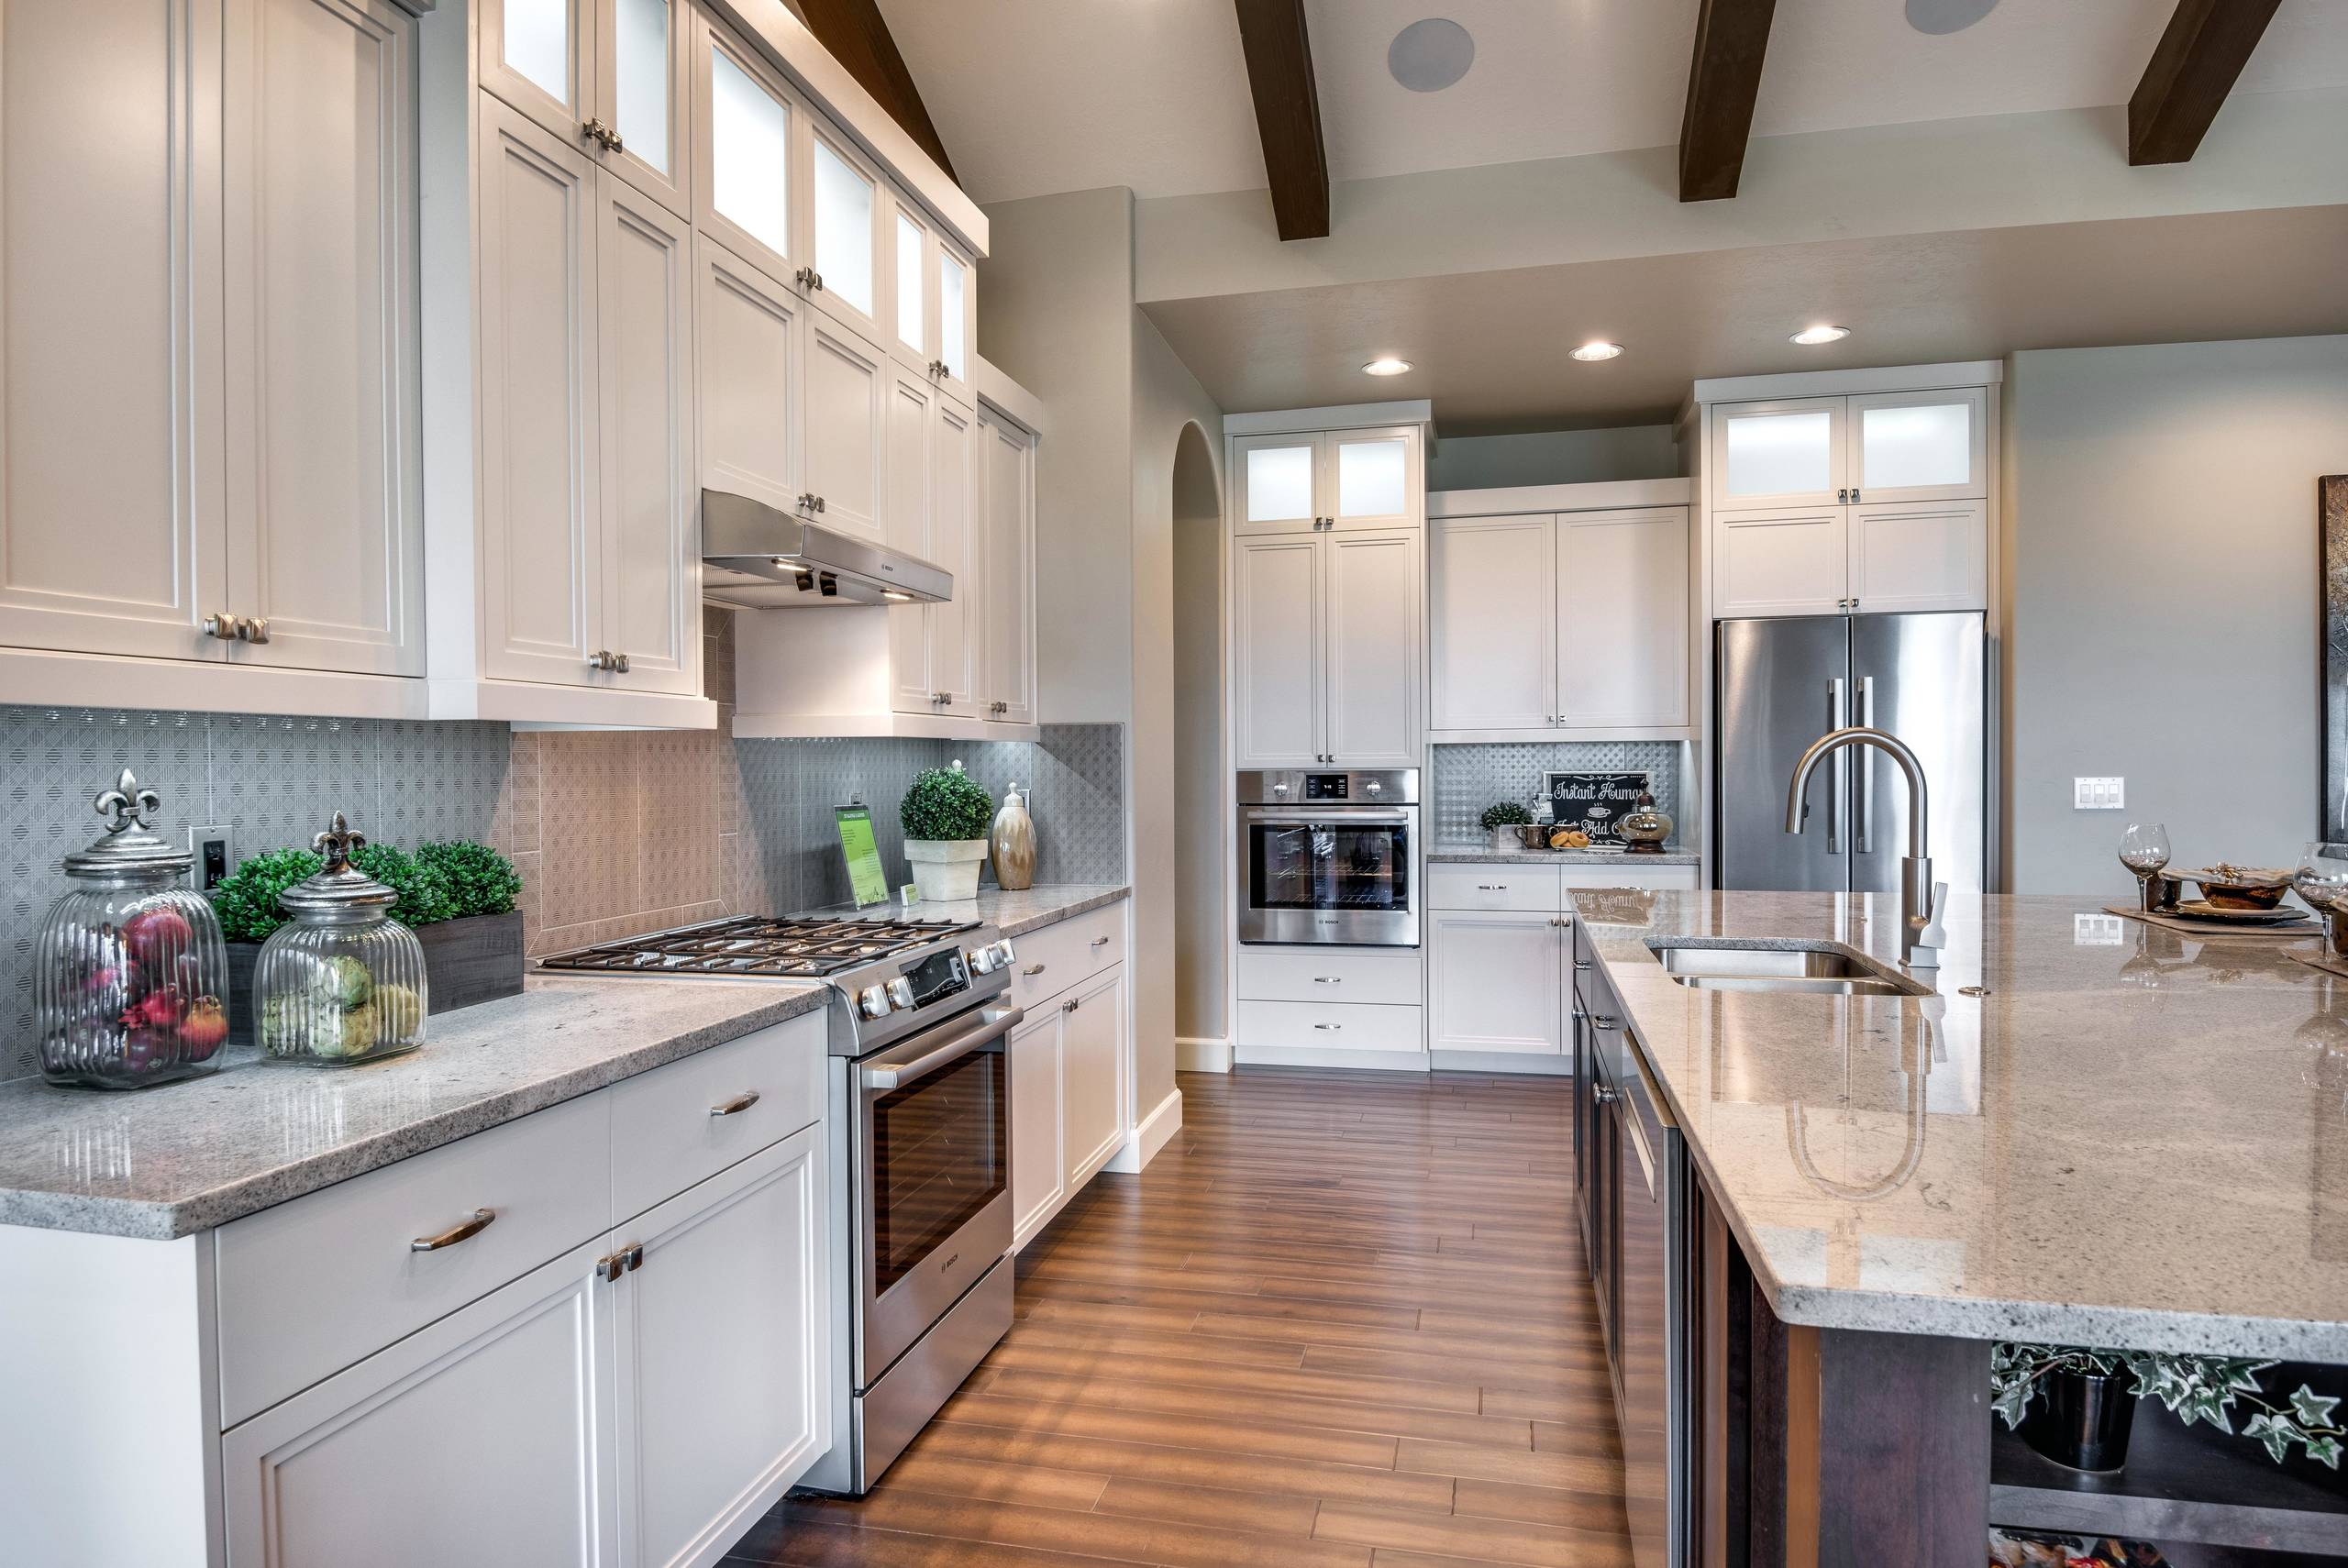 Kitchen design by Cotner Building company